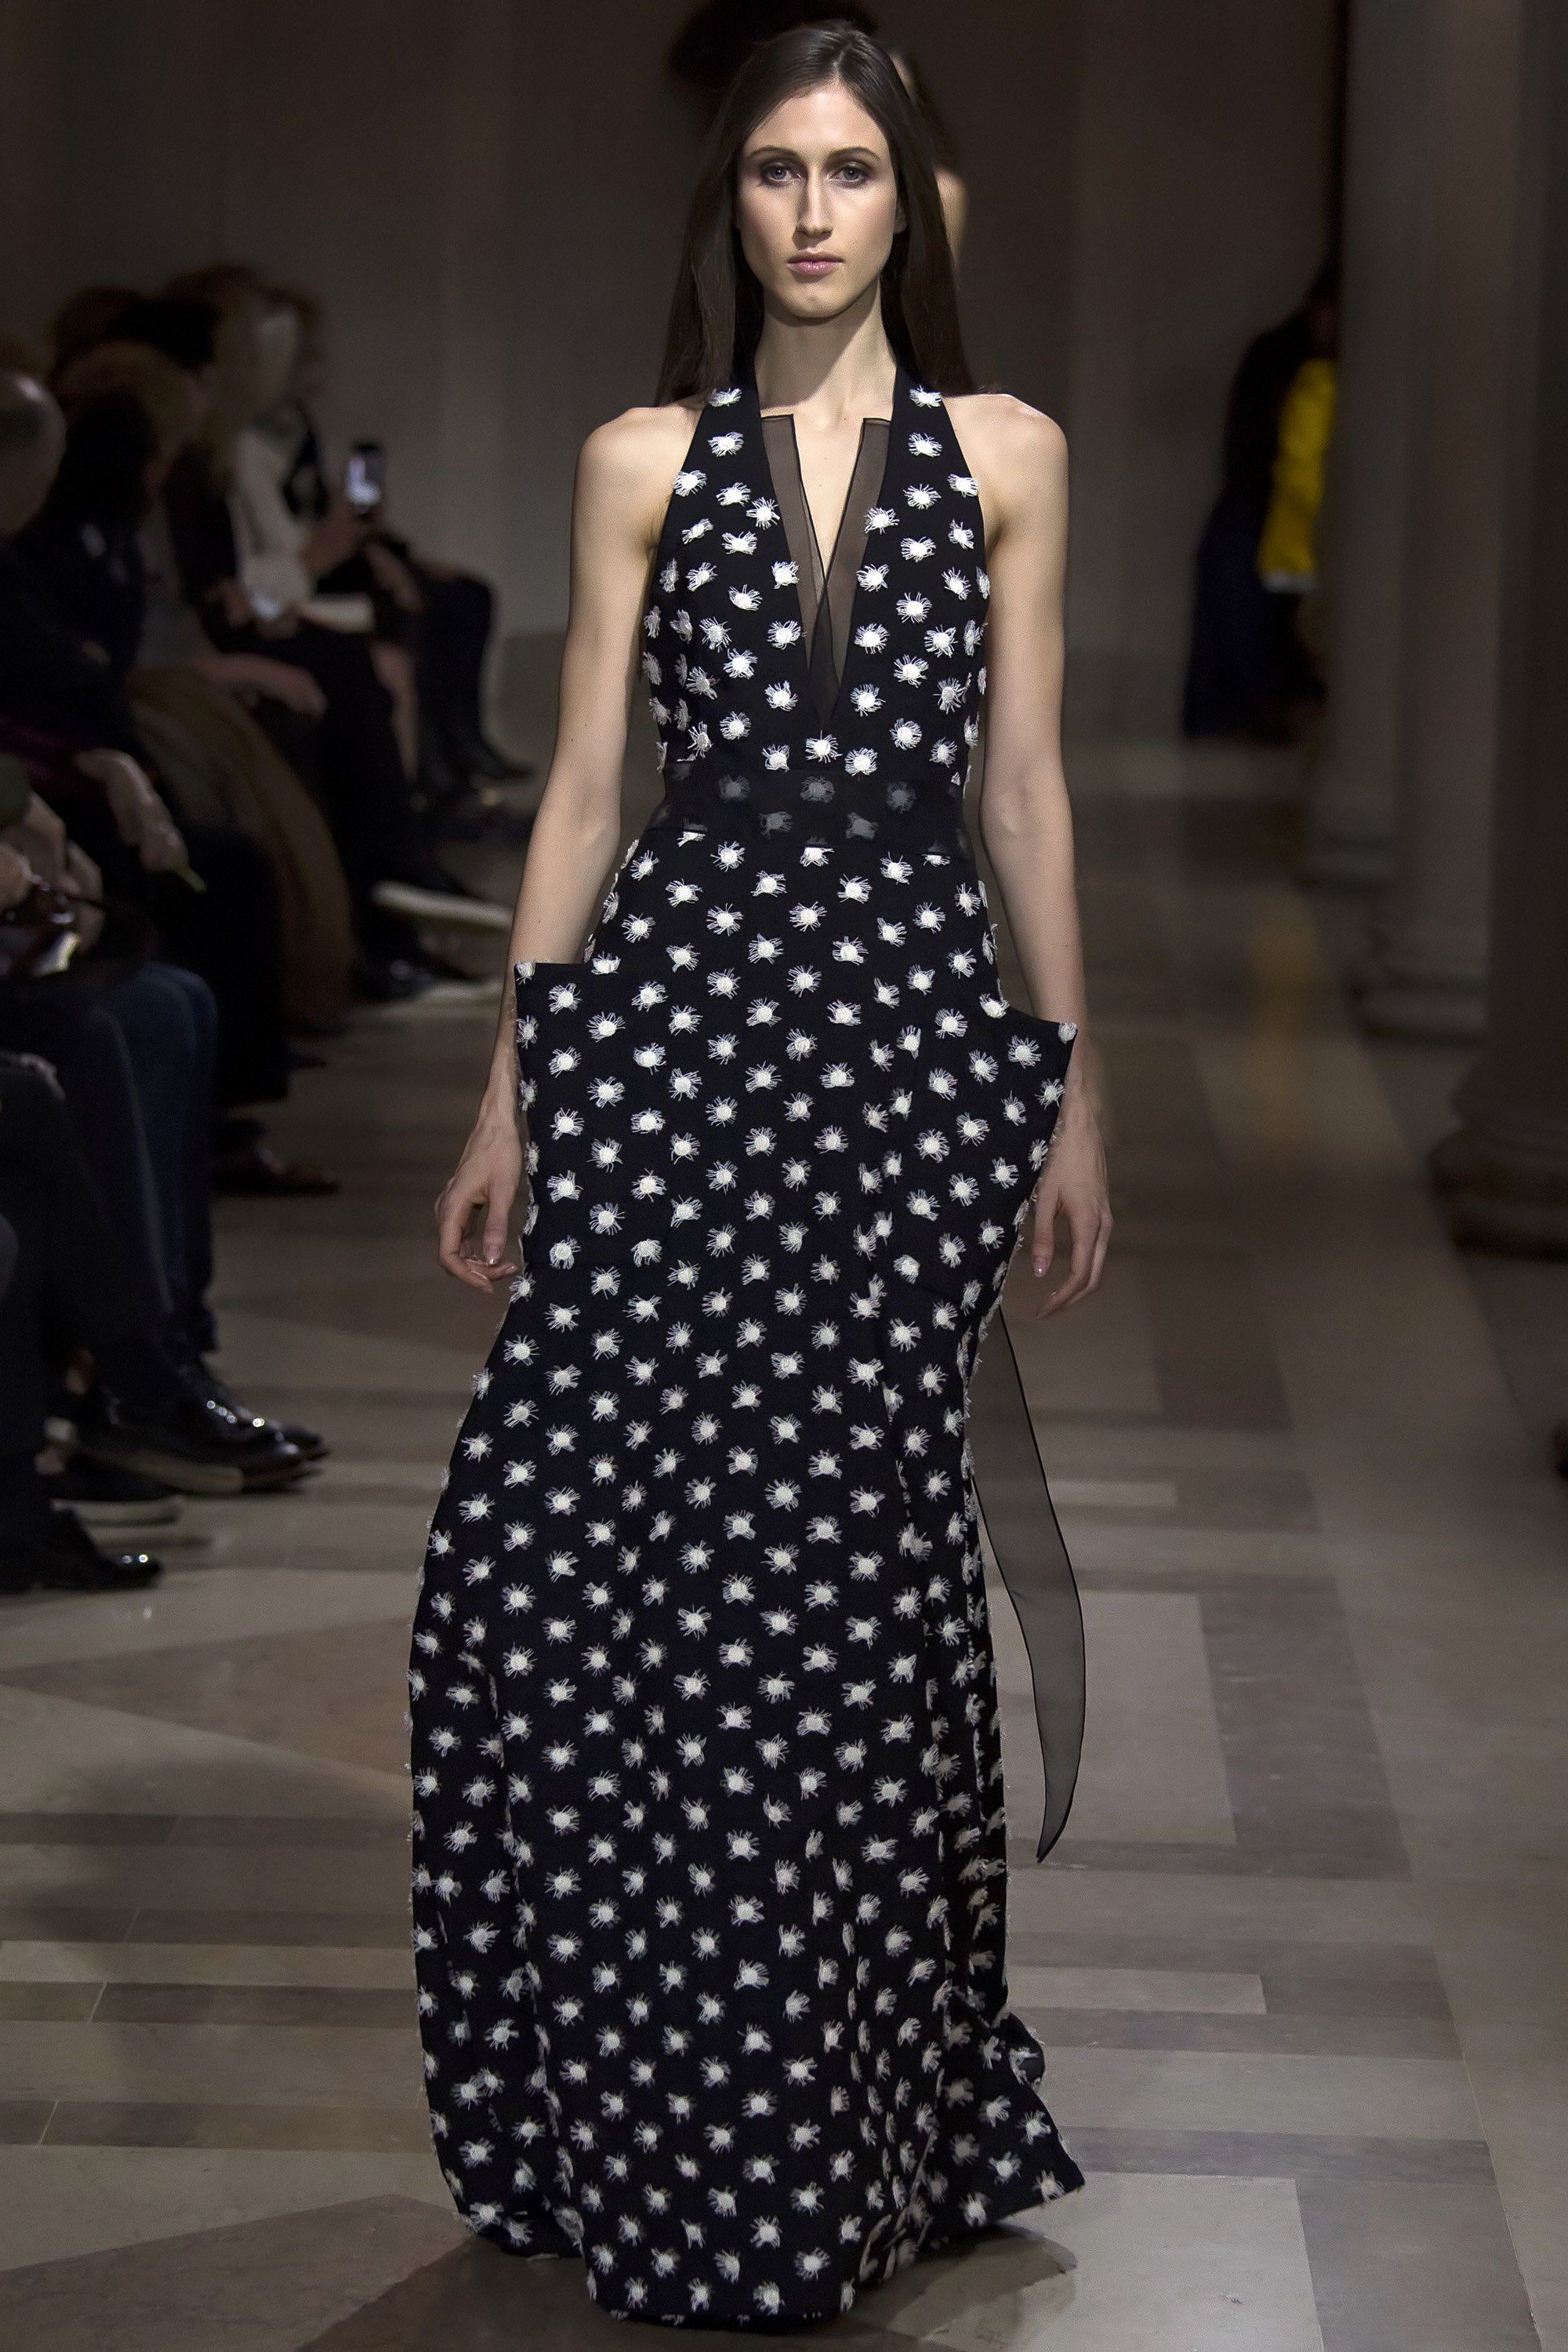 Carolina Herrera Fall 2016 Ready-to-Wear Fashion Show - Anna Cleveland